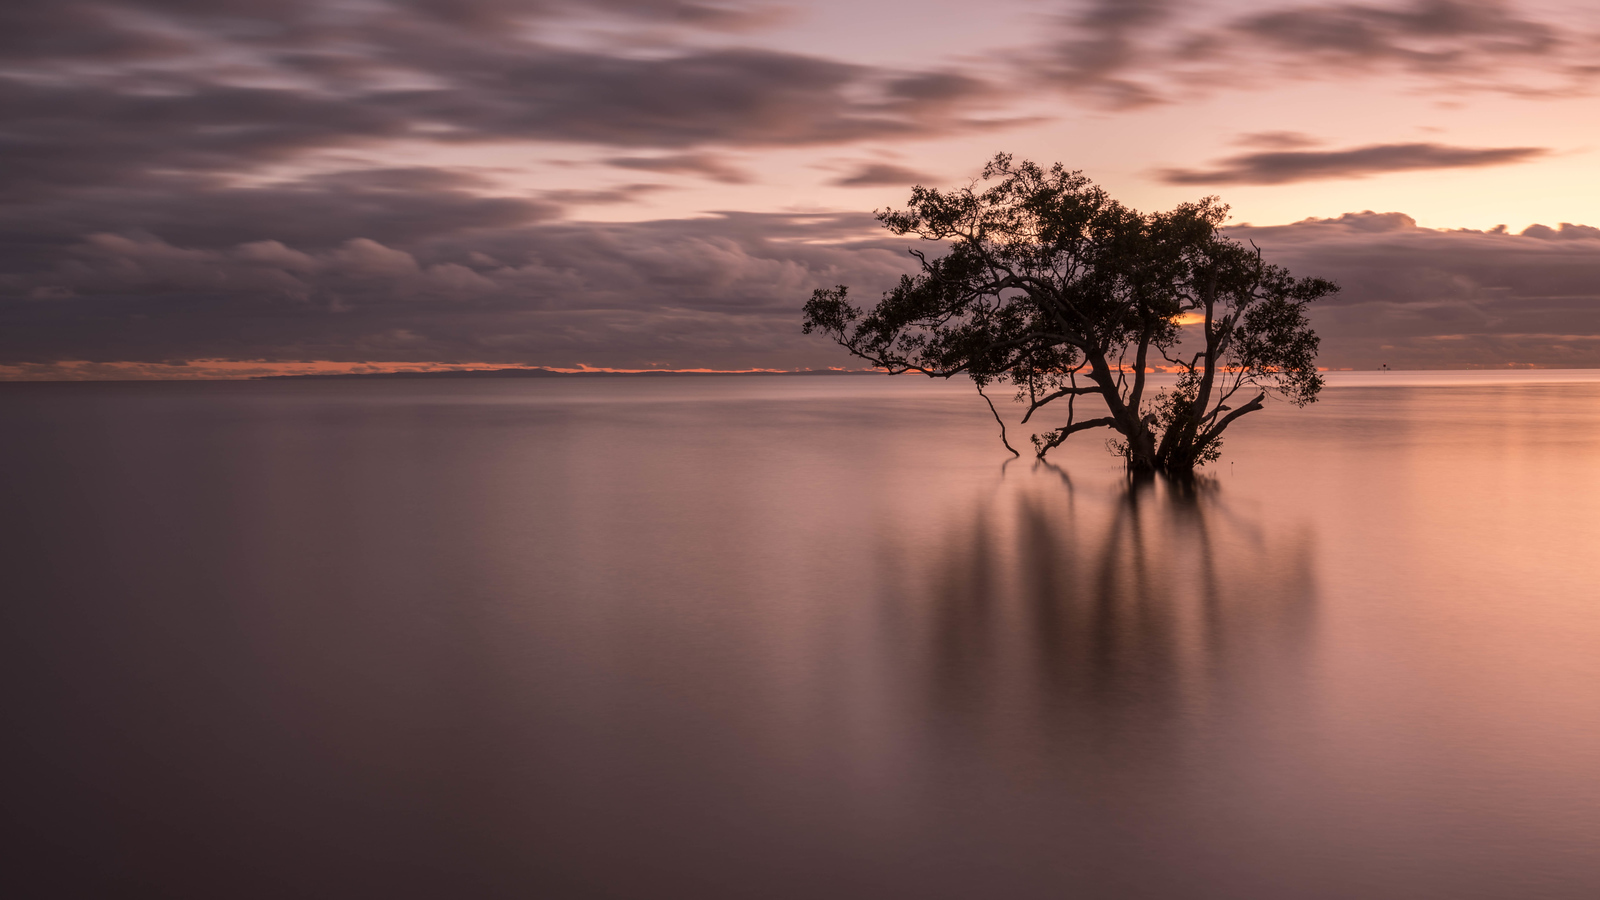 Nudgee Beach at Sunrise